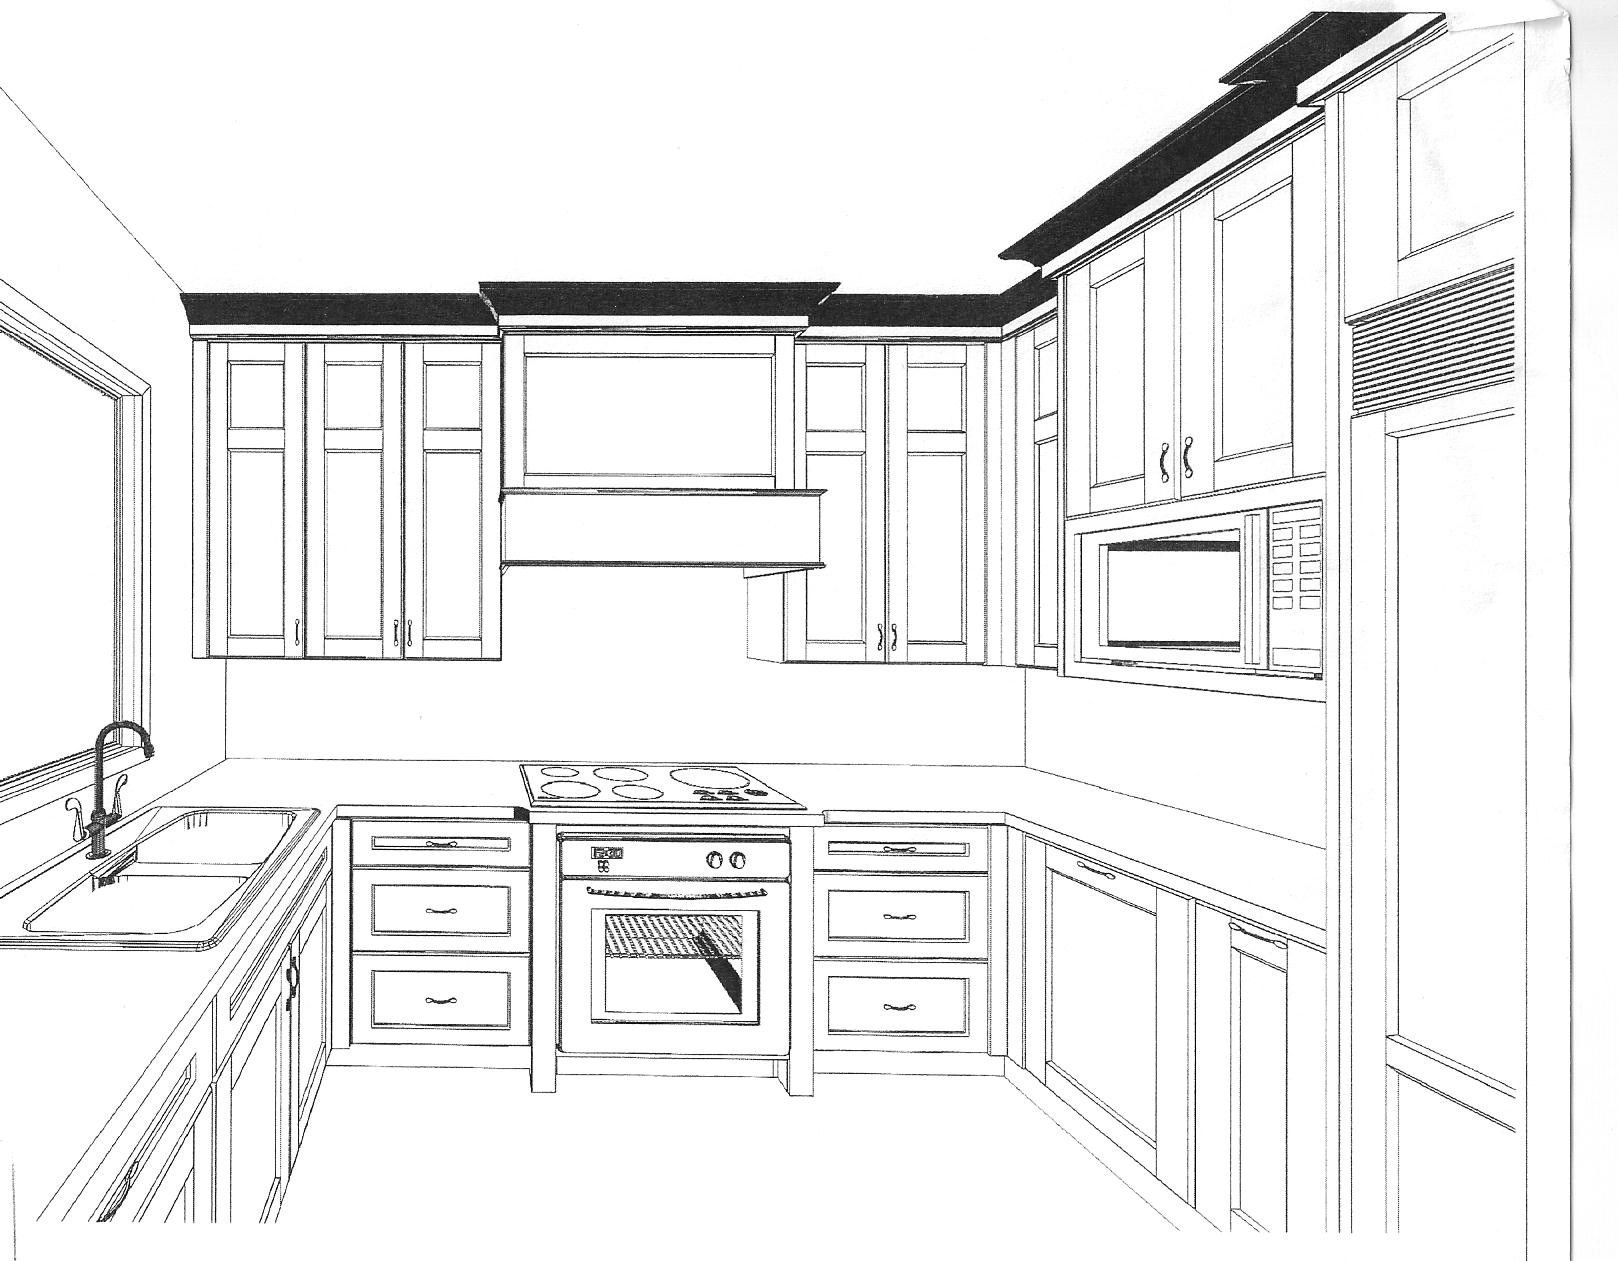 Pin by rahayu12 on interior ogi in 2019 | Kitchen ... How To Draw A Kitchen on draw floor plan kitchen, cartoon kitchen, easy simple drawings kitchen, draw your kitchen, draw my own kitchen, drawing black and white kitchen,